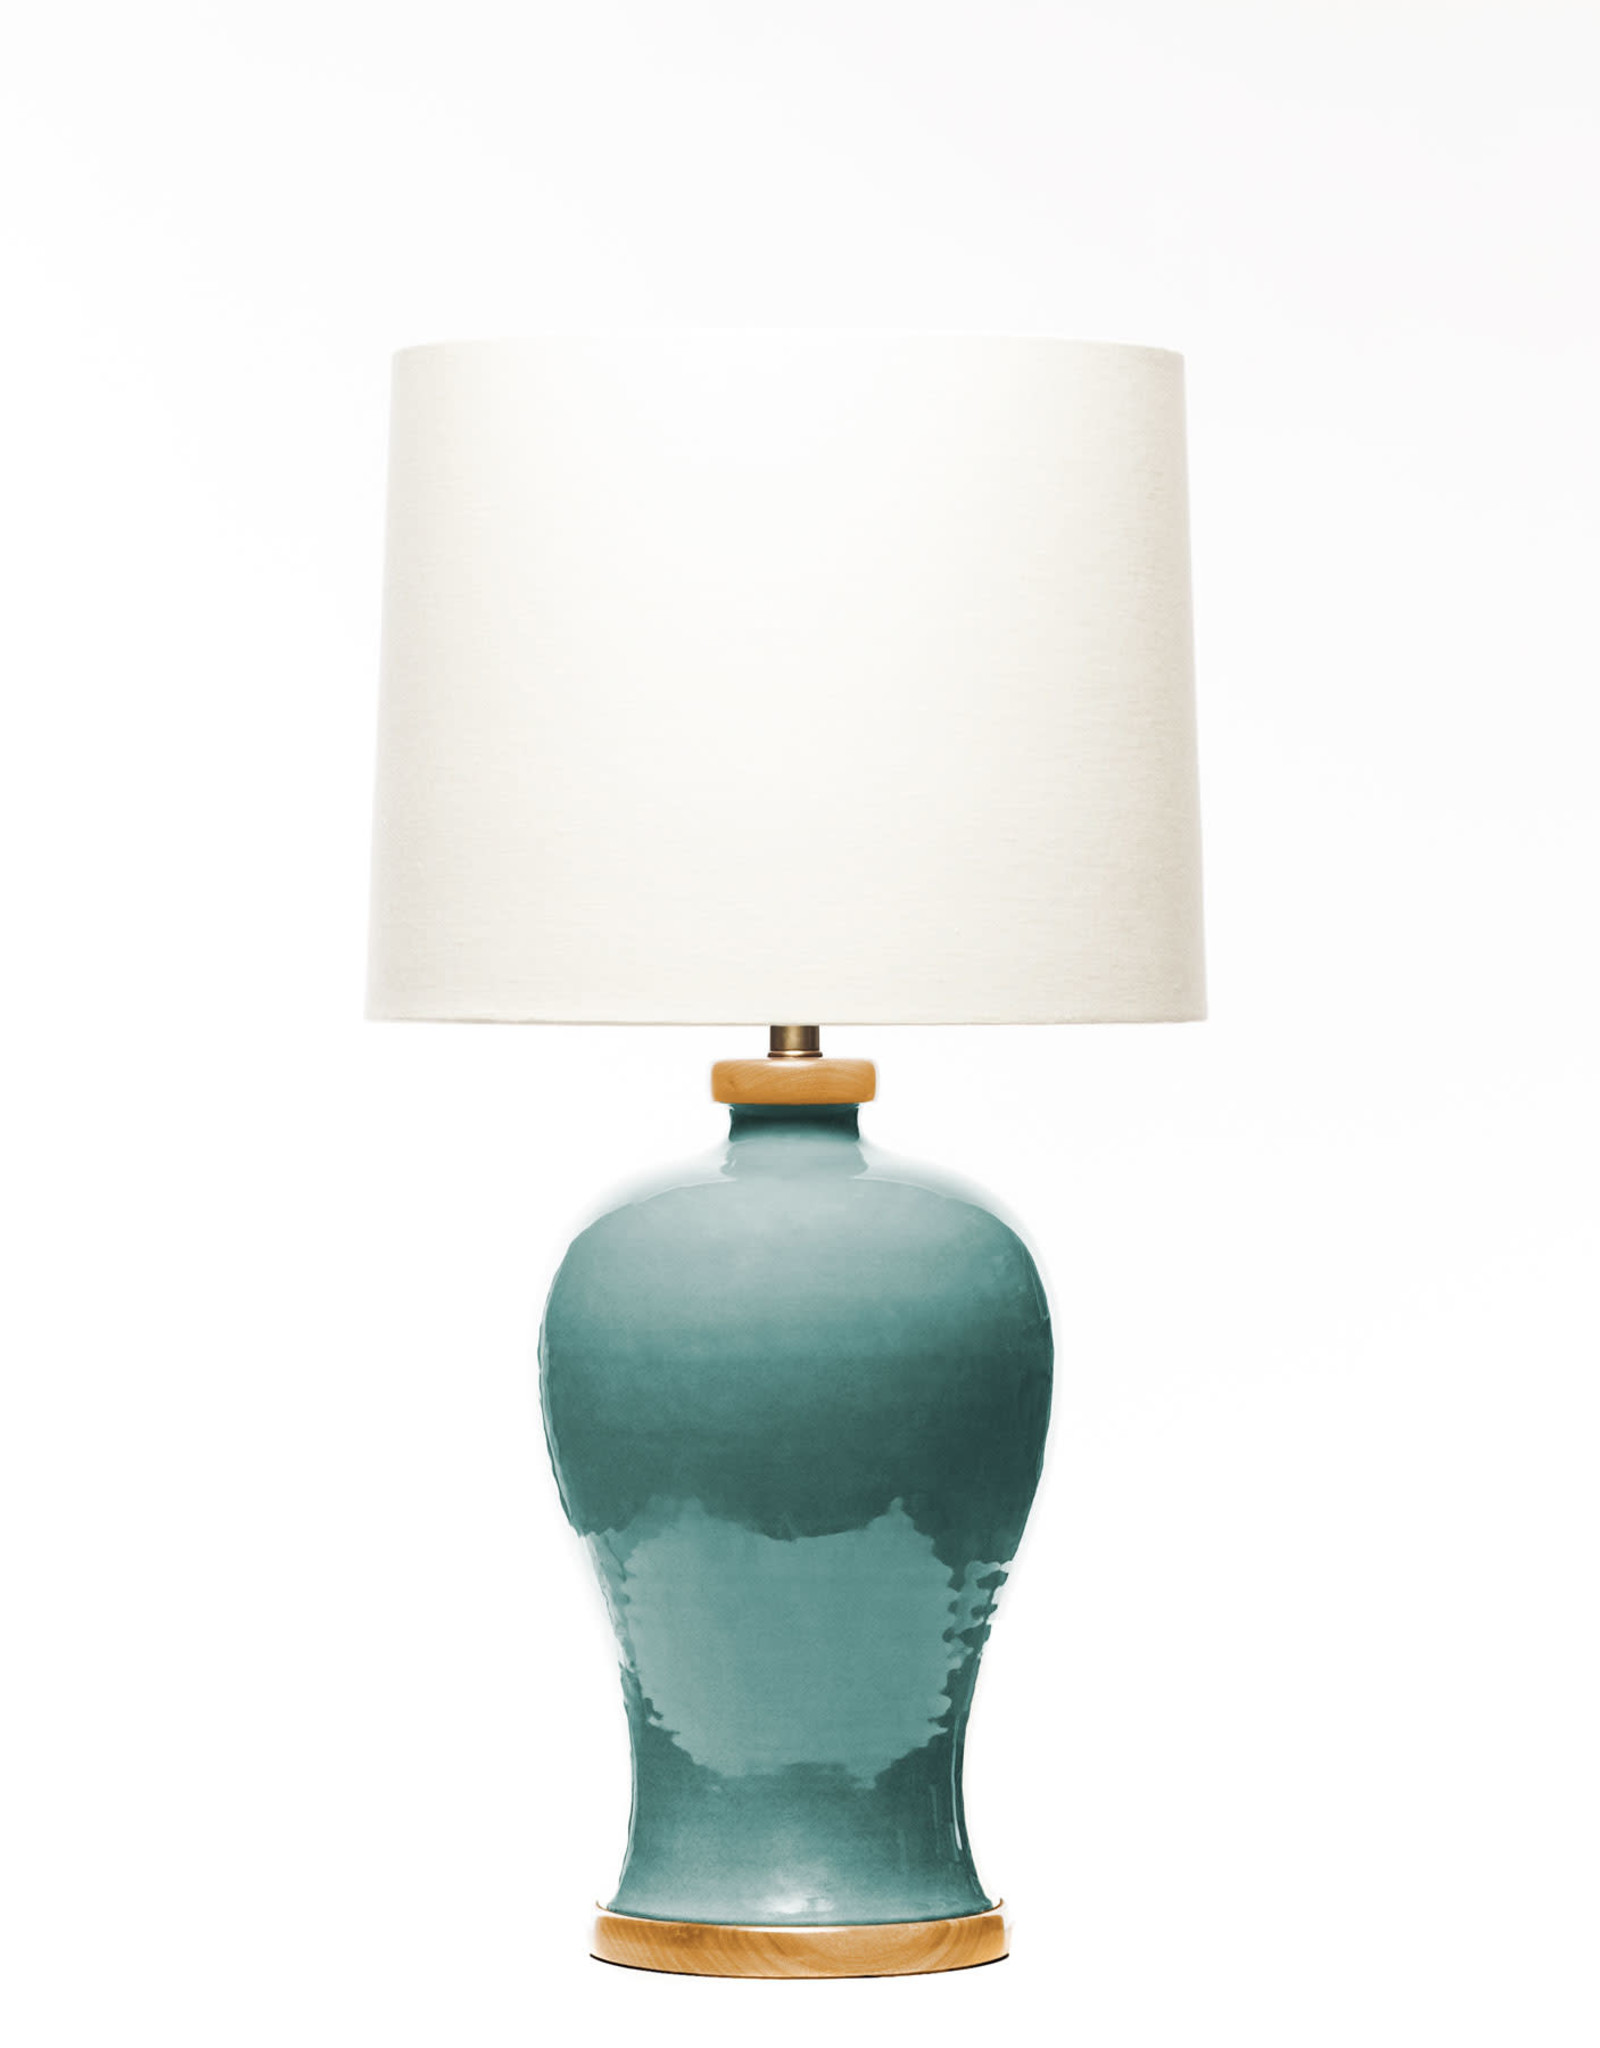 Lawrence & Scott Dashiell Table Lamp in Aquamarine with Oak Base